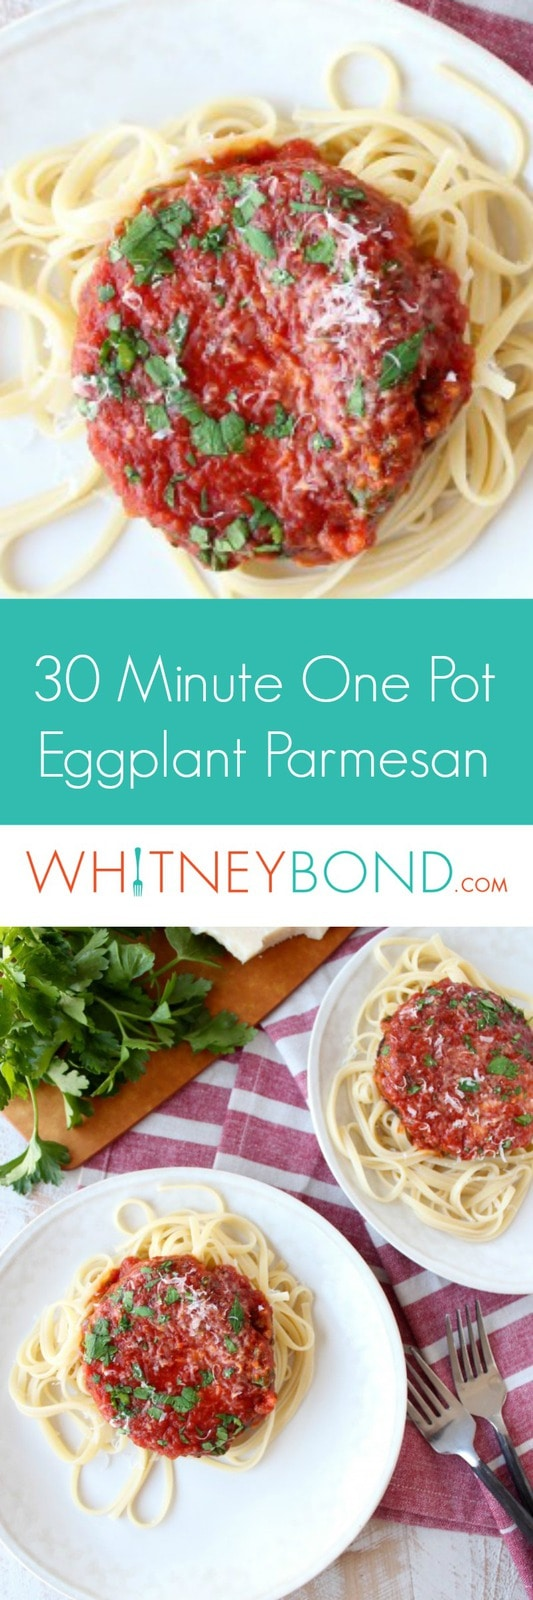 30 Minute One-Pot Easy Eggplant Parmesan Recipe